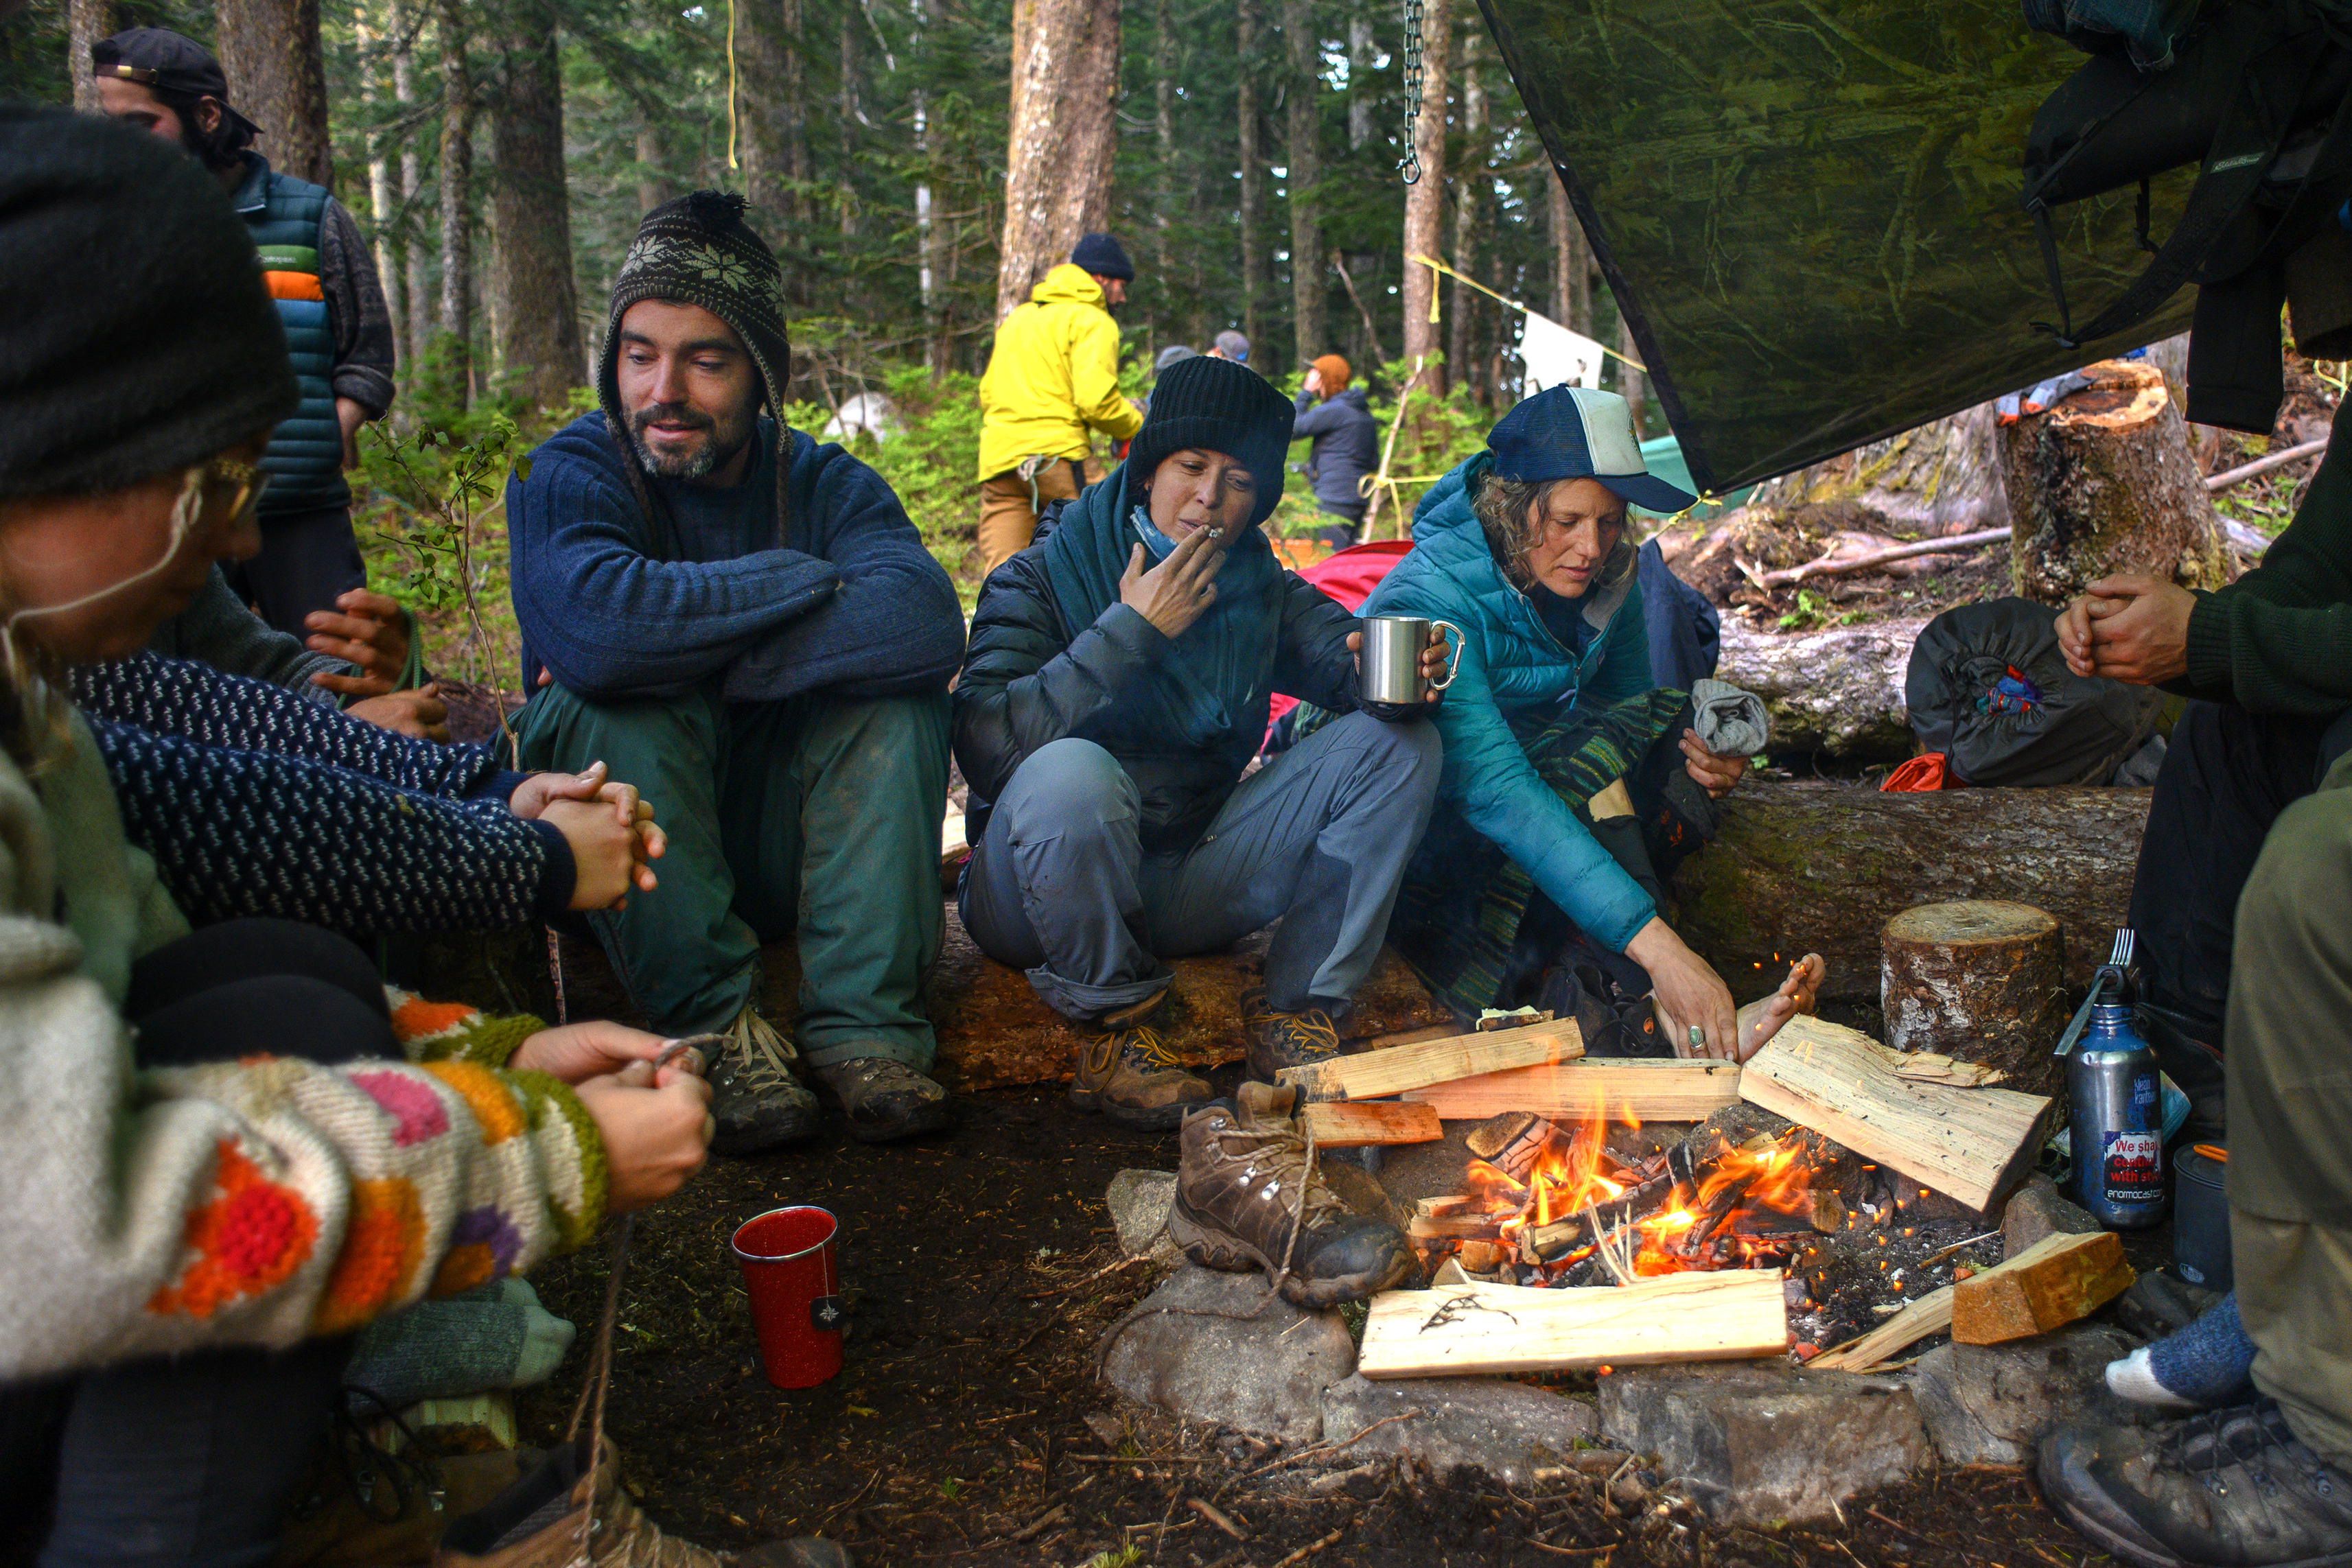 Activists at a protest site known as Ridge Camp near the headwaters of Fairy Creek on southwestern Vancouver Island rest and warm their feet by the fire. Some have been in the camp for months. (Kieran Oudshoorn/CBC)